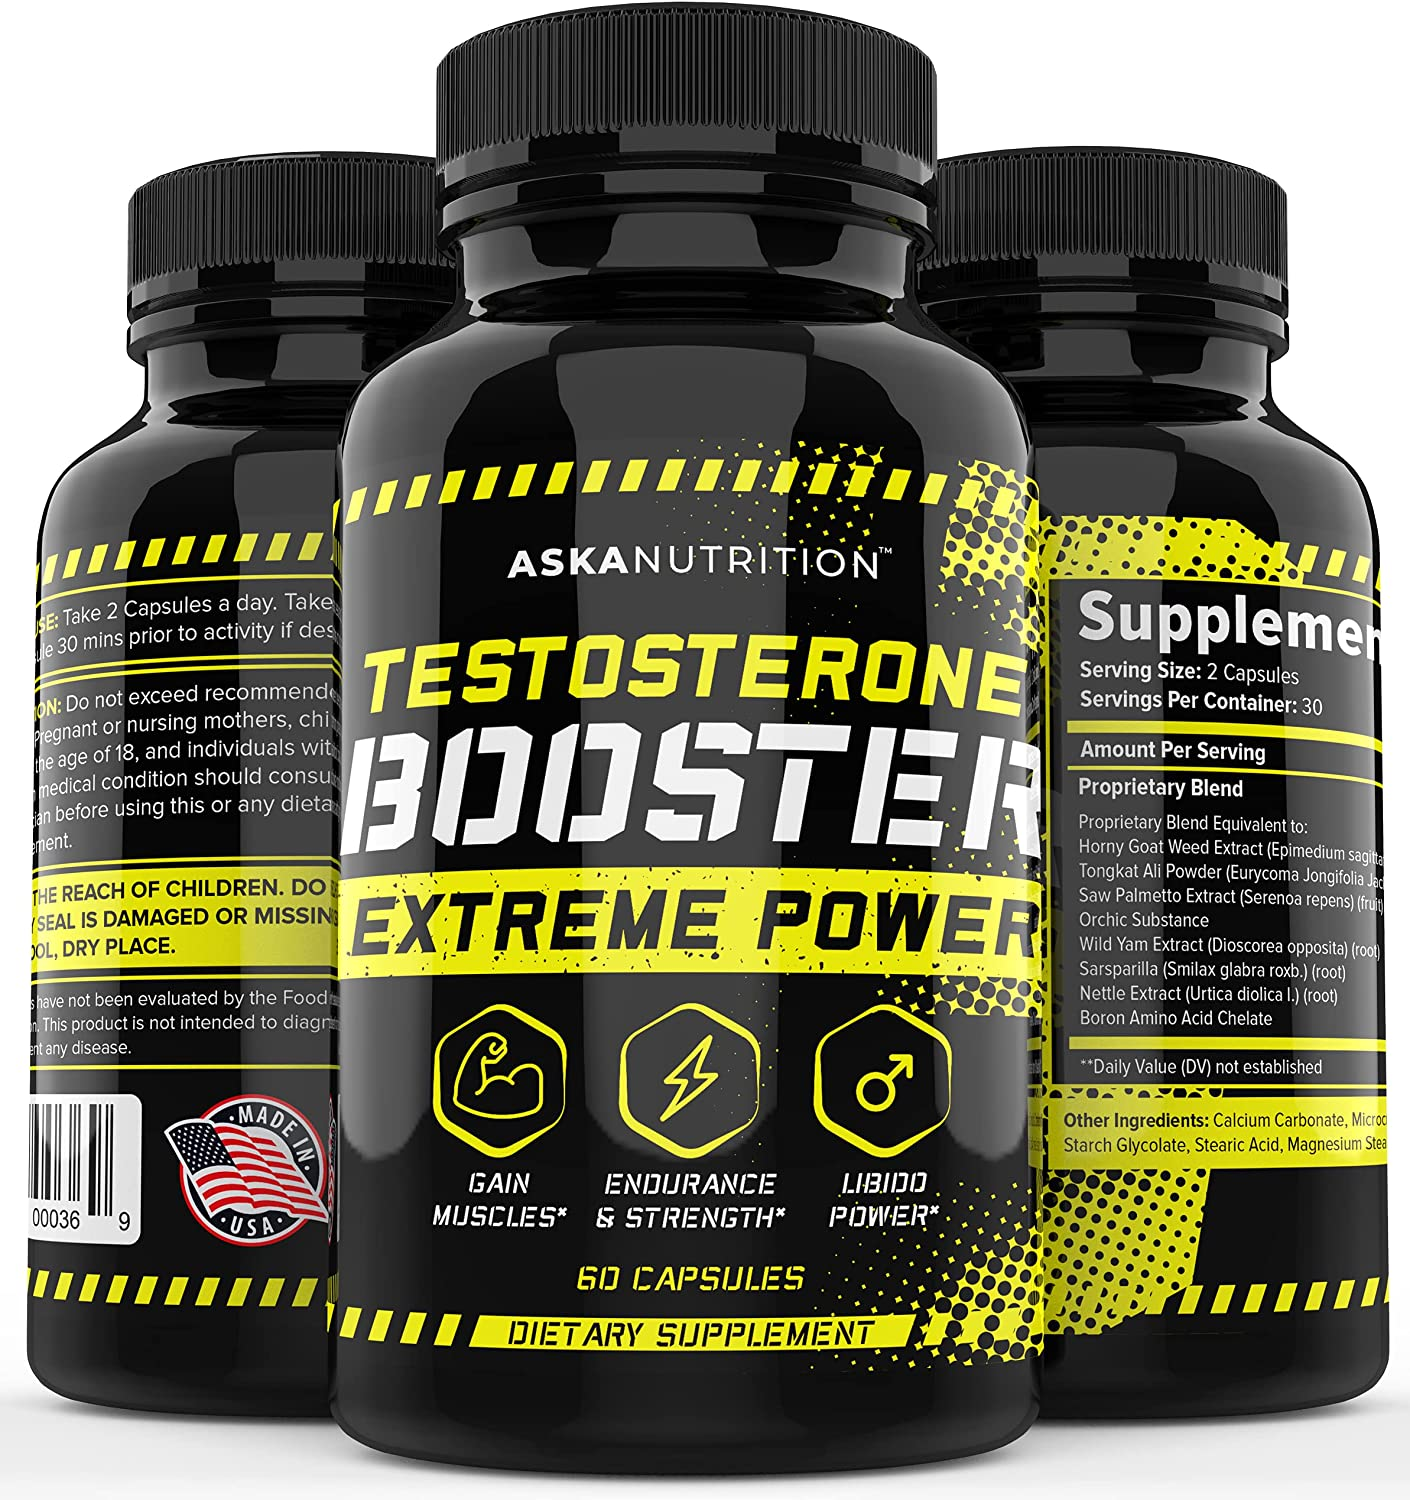 Amazon.com: Testosterone Booster for Men - Natural Test Boost with Horny  Goat Weed & Tongkat Ali - Muscle Builder - Male Enhancing Supplement Growth  - Test Booster - Energy, Desire, Libido Booster -